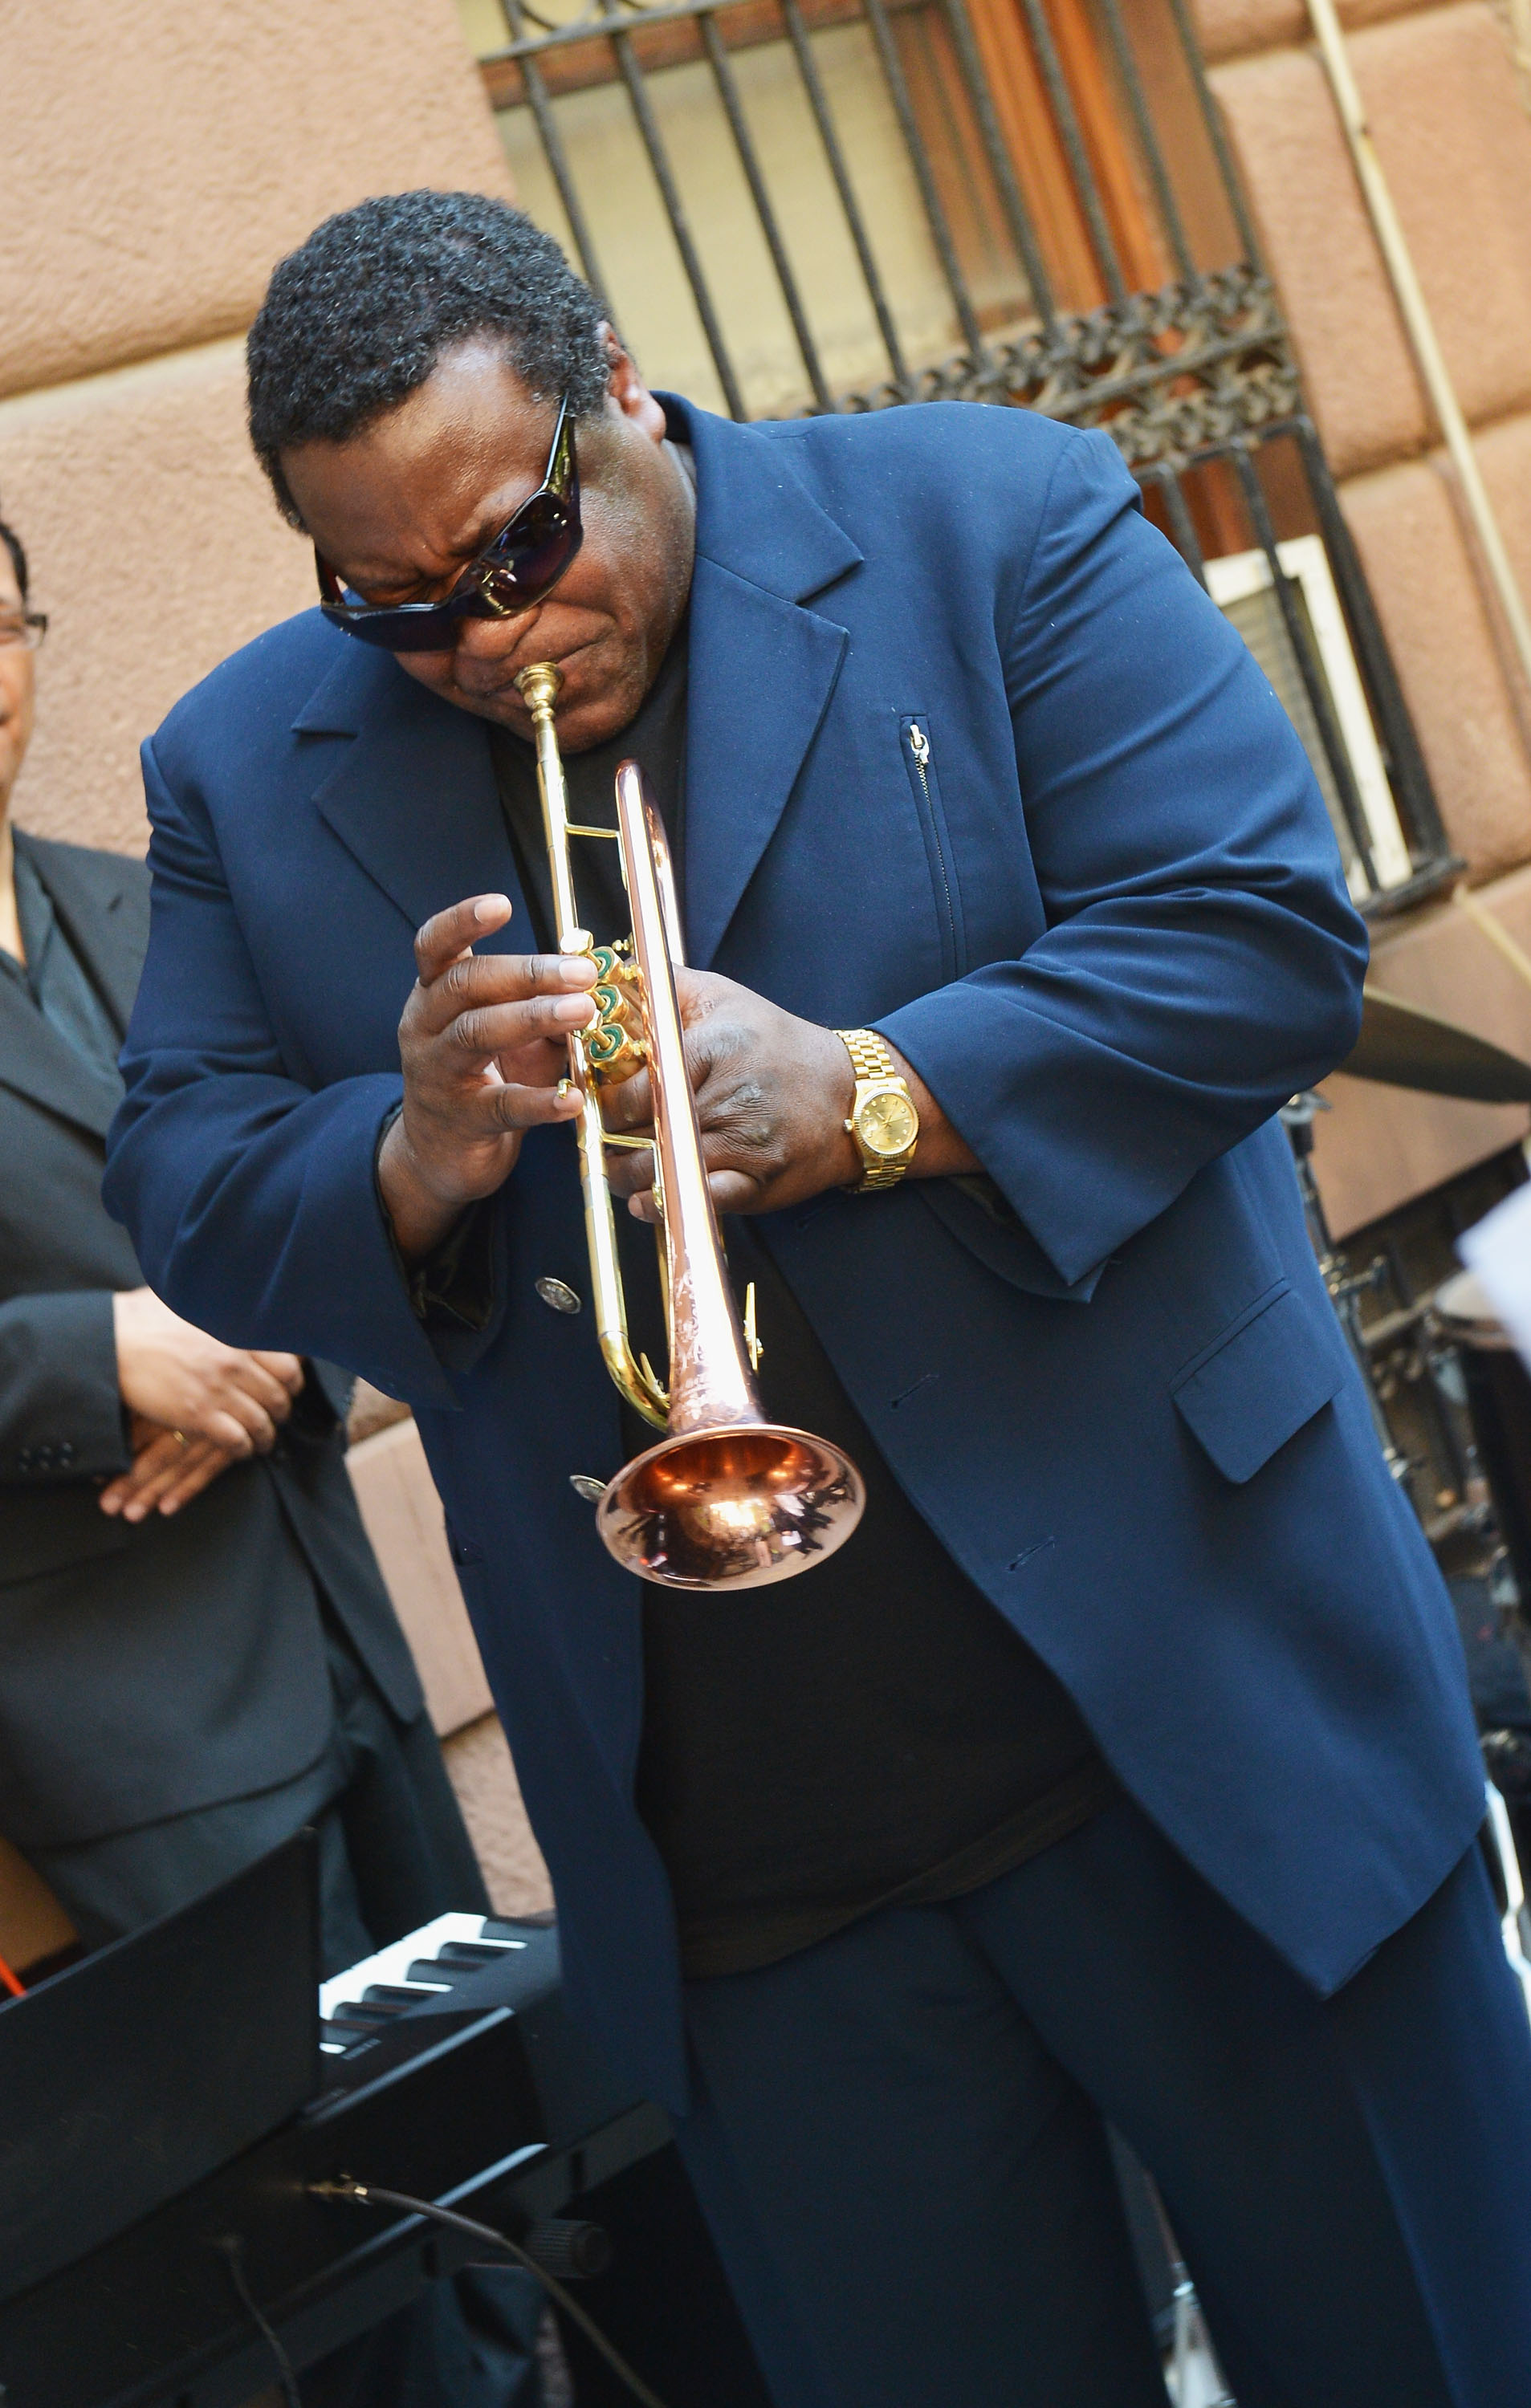 Wallace Roney funeral